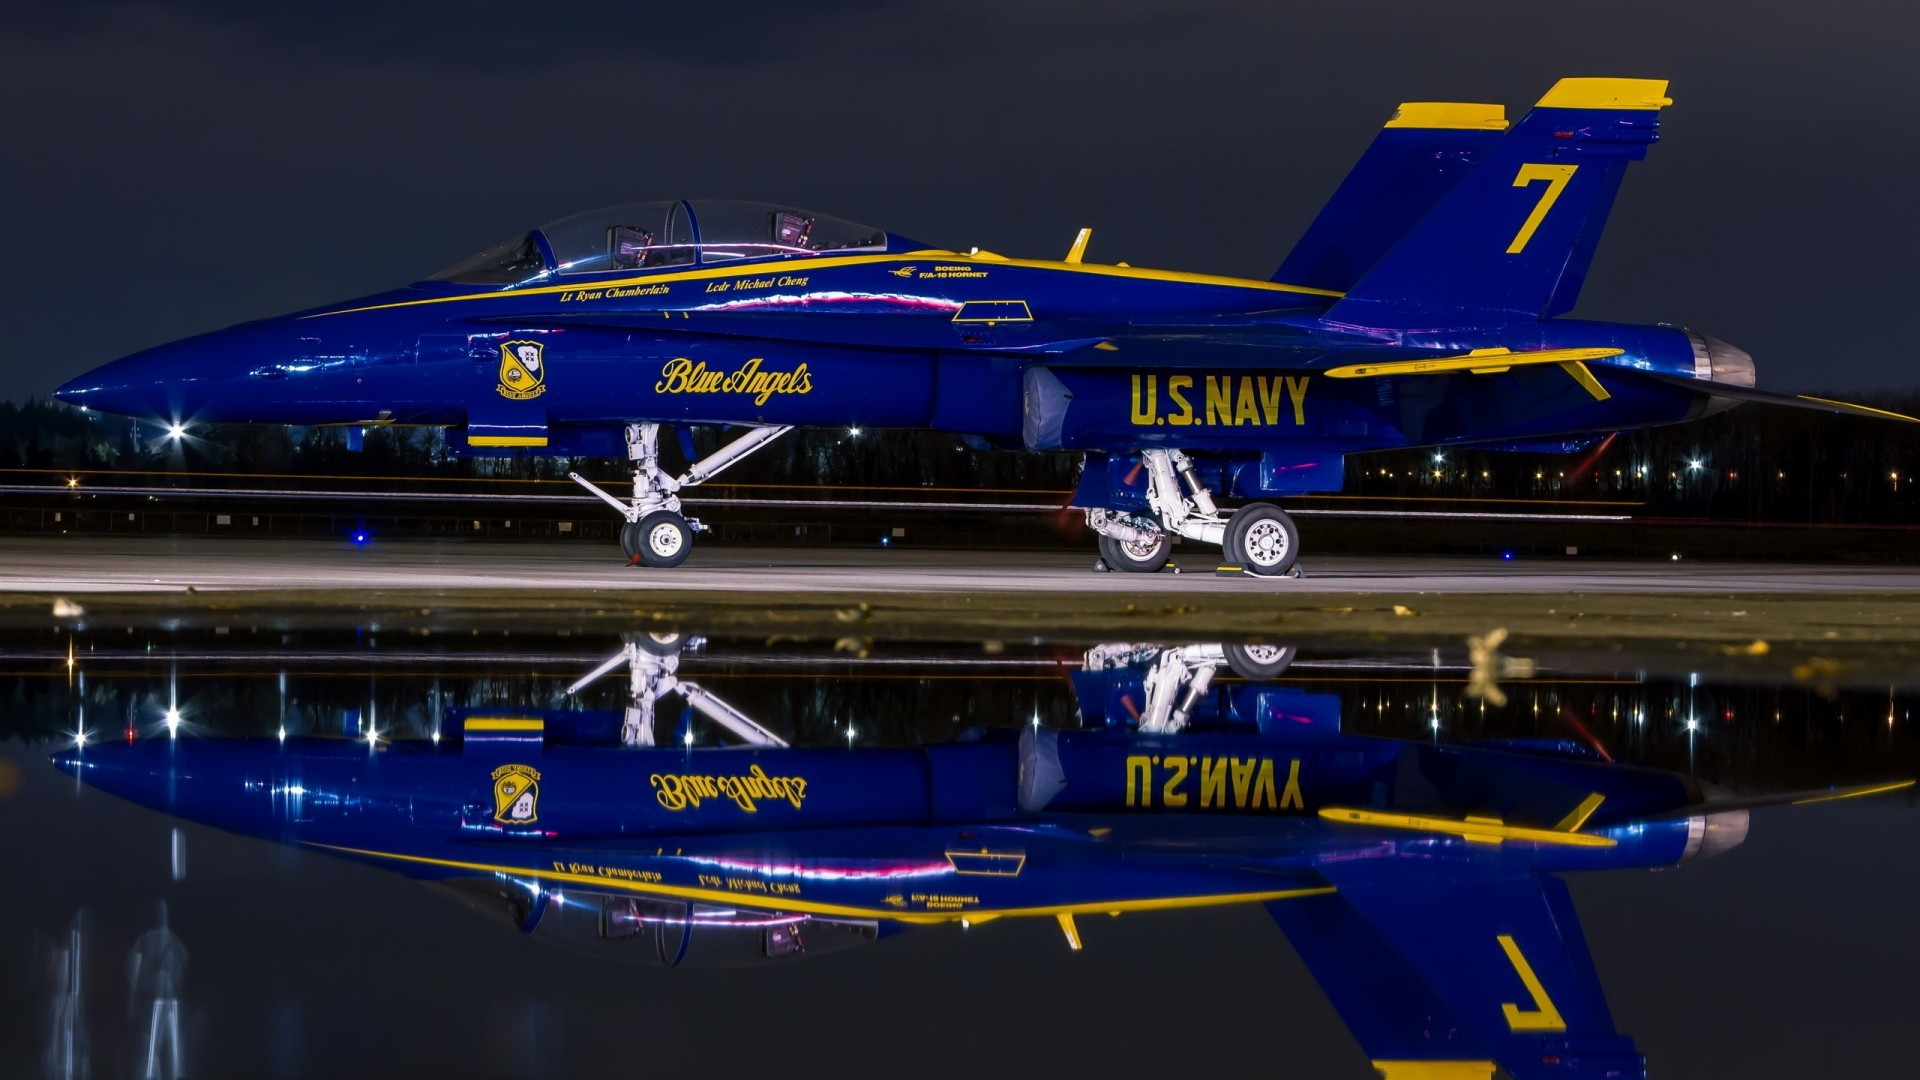 blue-angel-f-hornet-reflected-at-night-hd-1920%C3%971080-wallpaper-wpc9003066